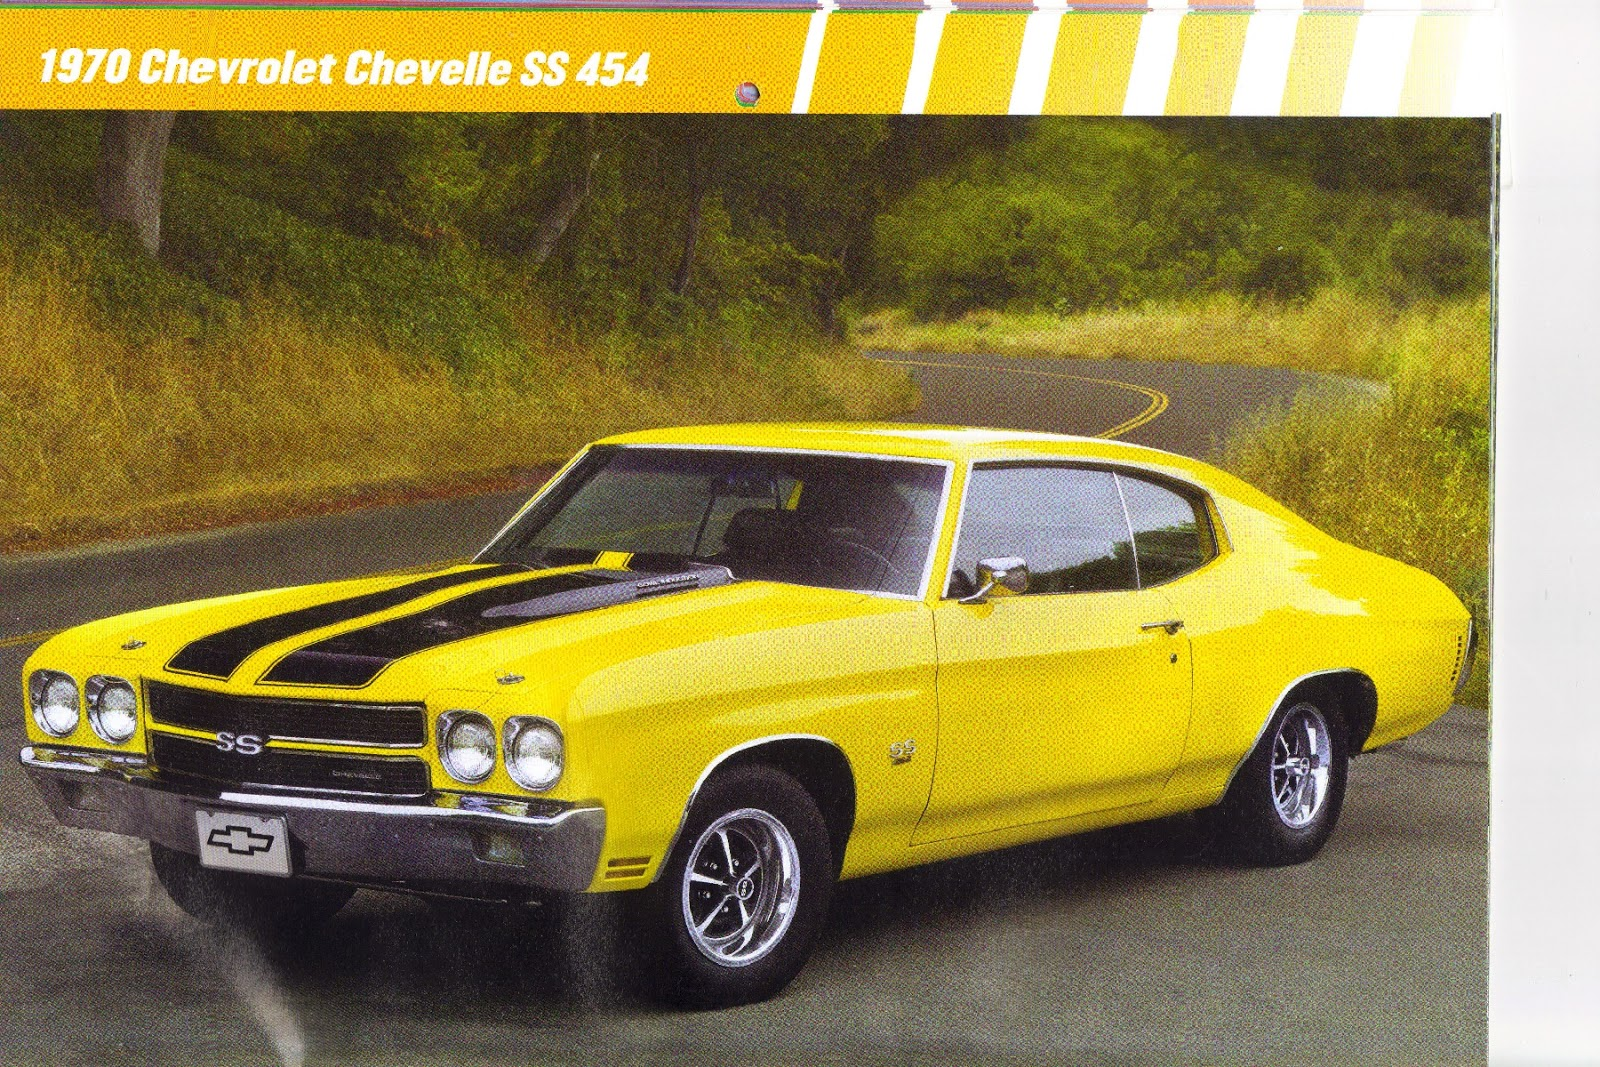 All Chevy 1970 chevrolet chevelle ss 454 : Georgia Boy's Old Car Museum: 1970 Chevrolet Chevelle SS 454